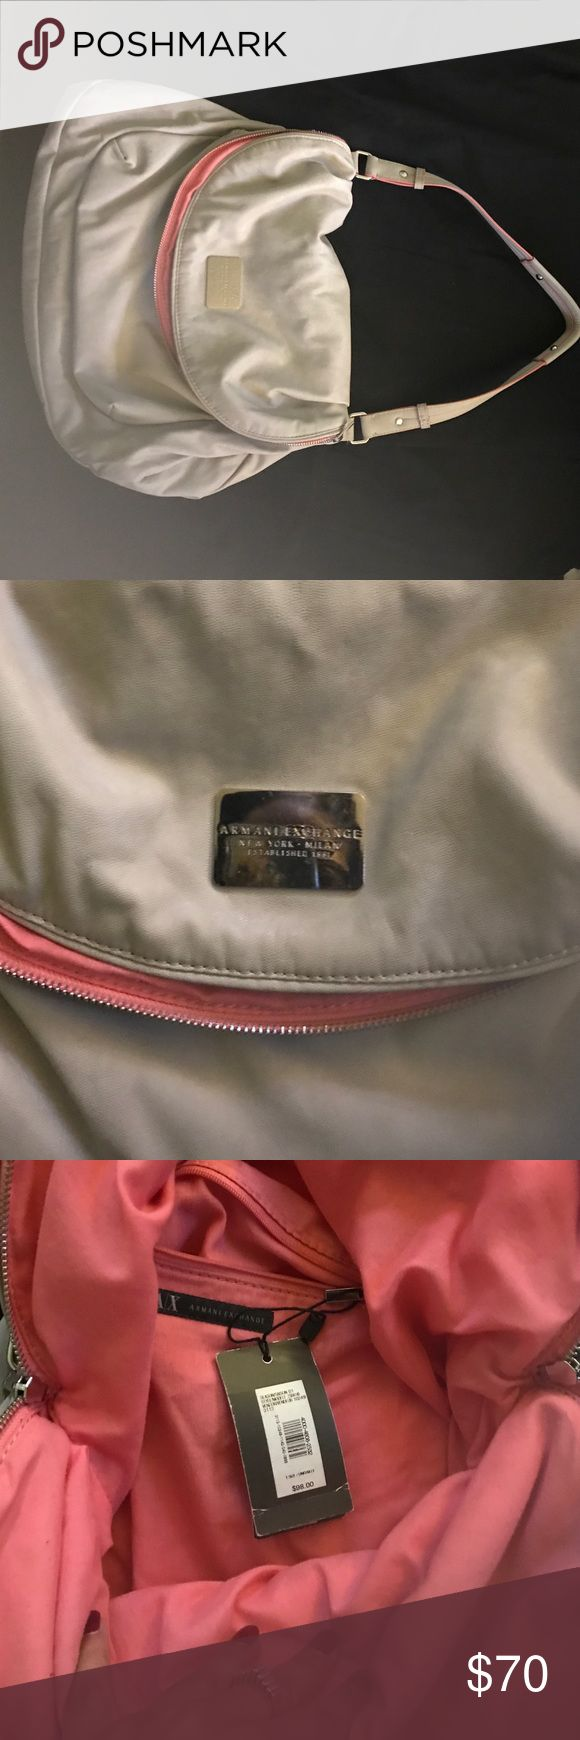 Armani exchange purse Great purse includes tags, willing to bundle with wallet A/X Armani Exchange Bags Satchels